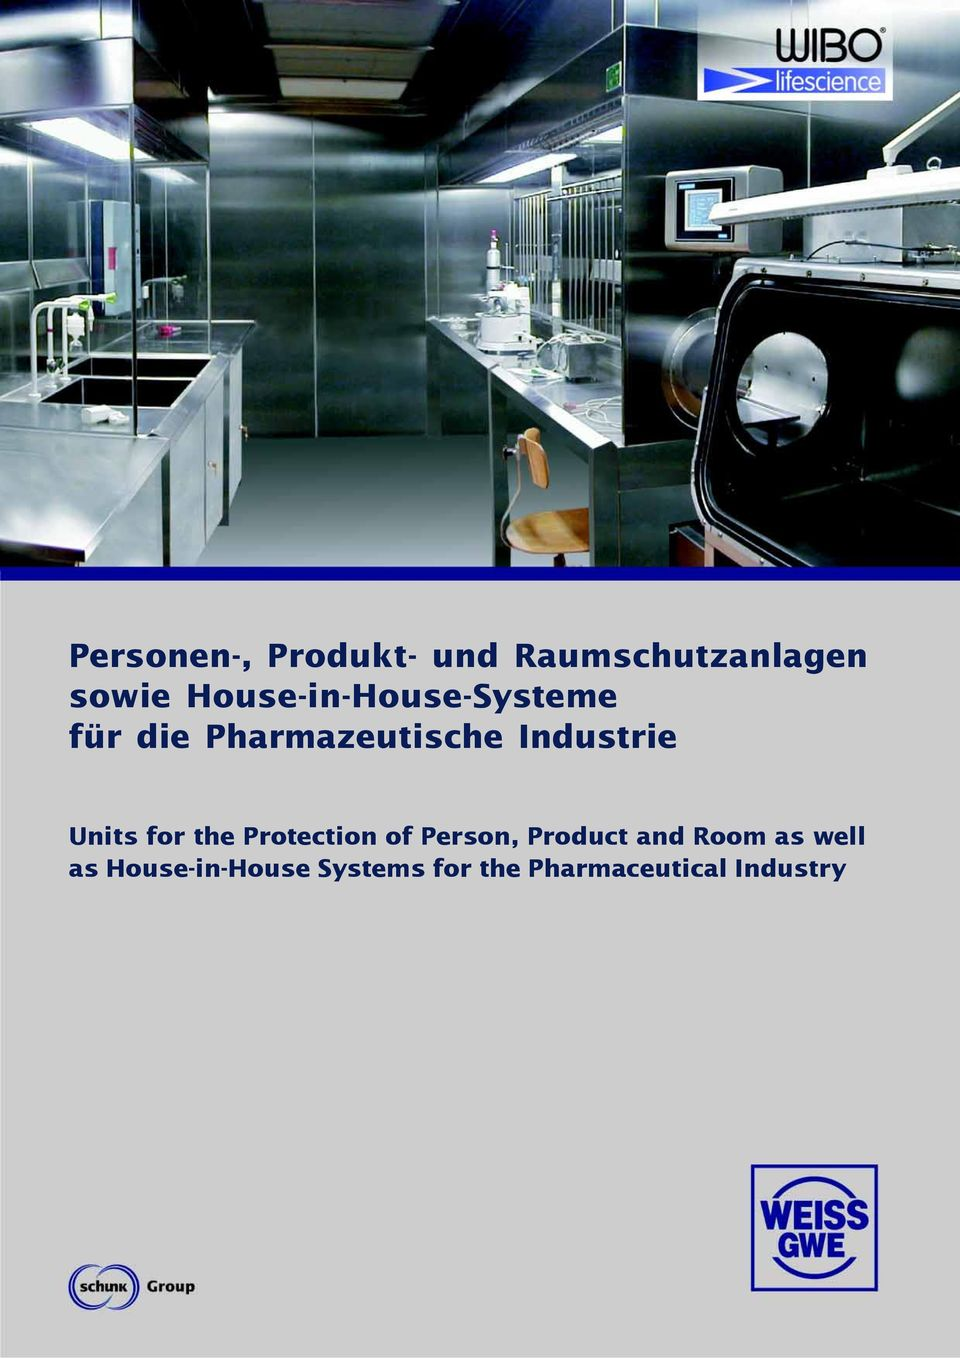 Industrie Units for the Protection of Person, Product